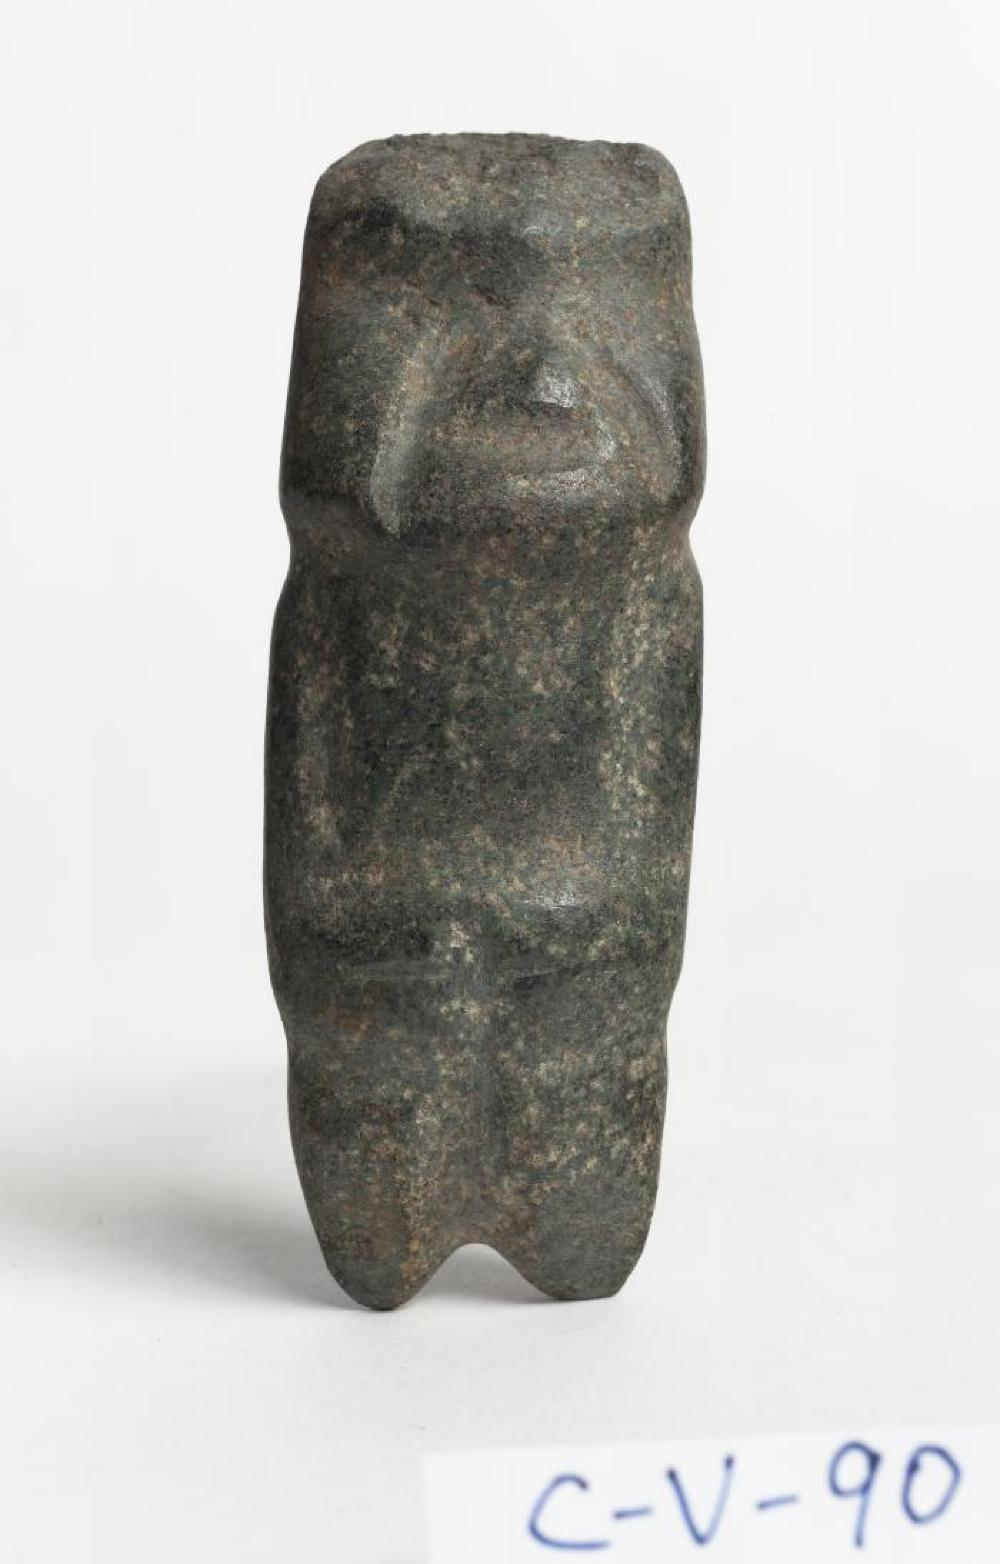 Mezcala (Mexico); Figure; Pre-Columbian, 300—100 BCE; Stone; 4 3/4 x 1 1/2 x 1 1/4 in.; Collection of Isamu Noguchi. (Study Collection; Collectibles, C-V-90)